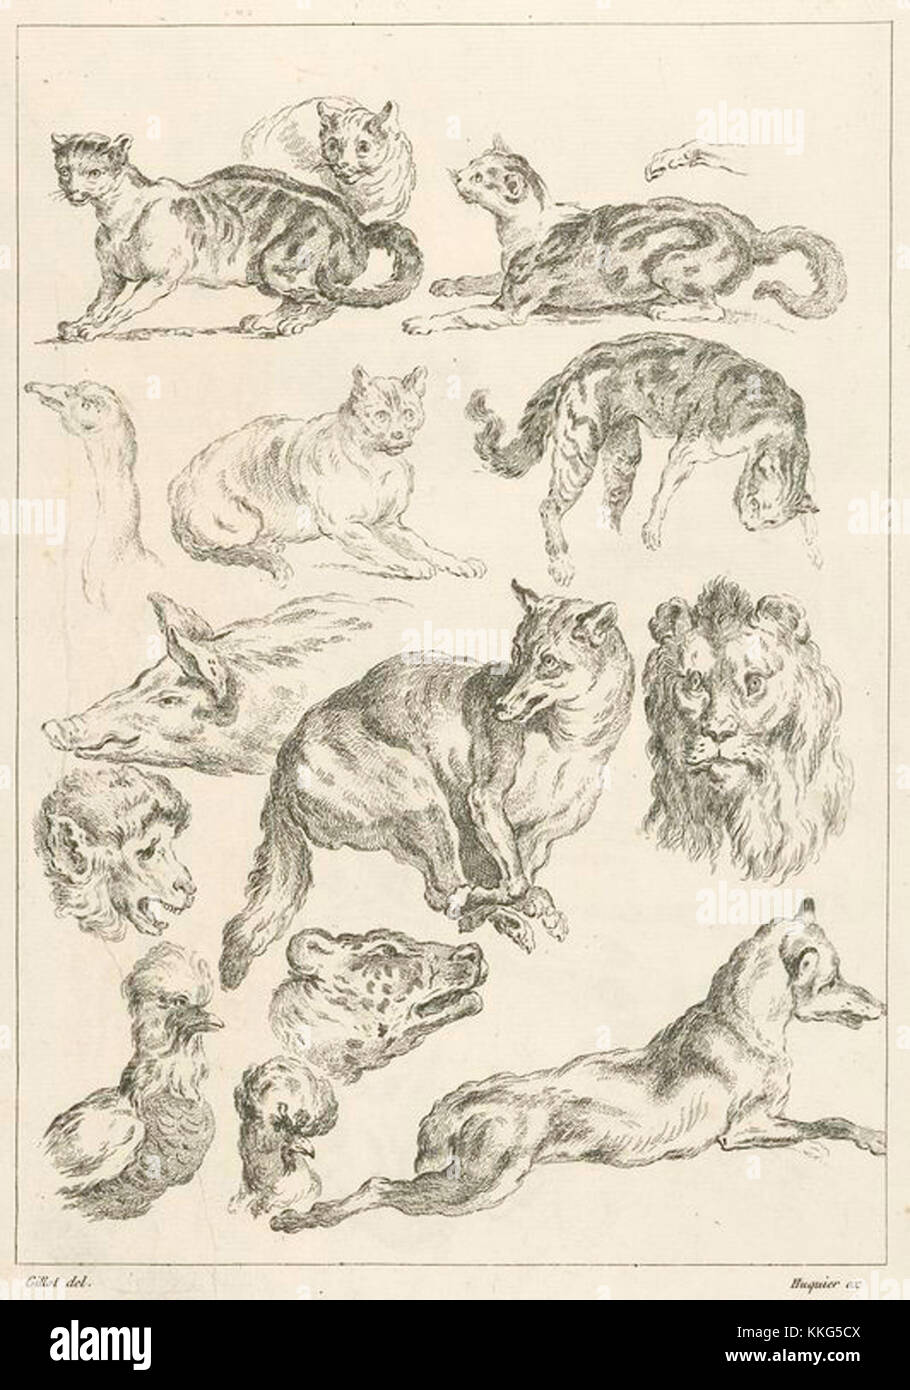 vintage drawings of various wild animals Stock Photo